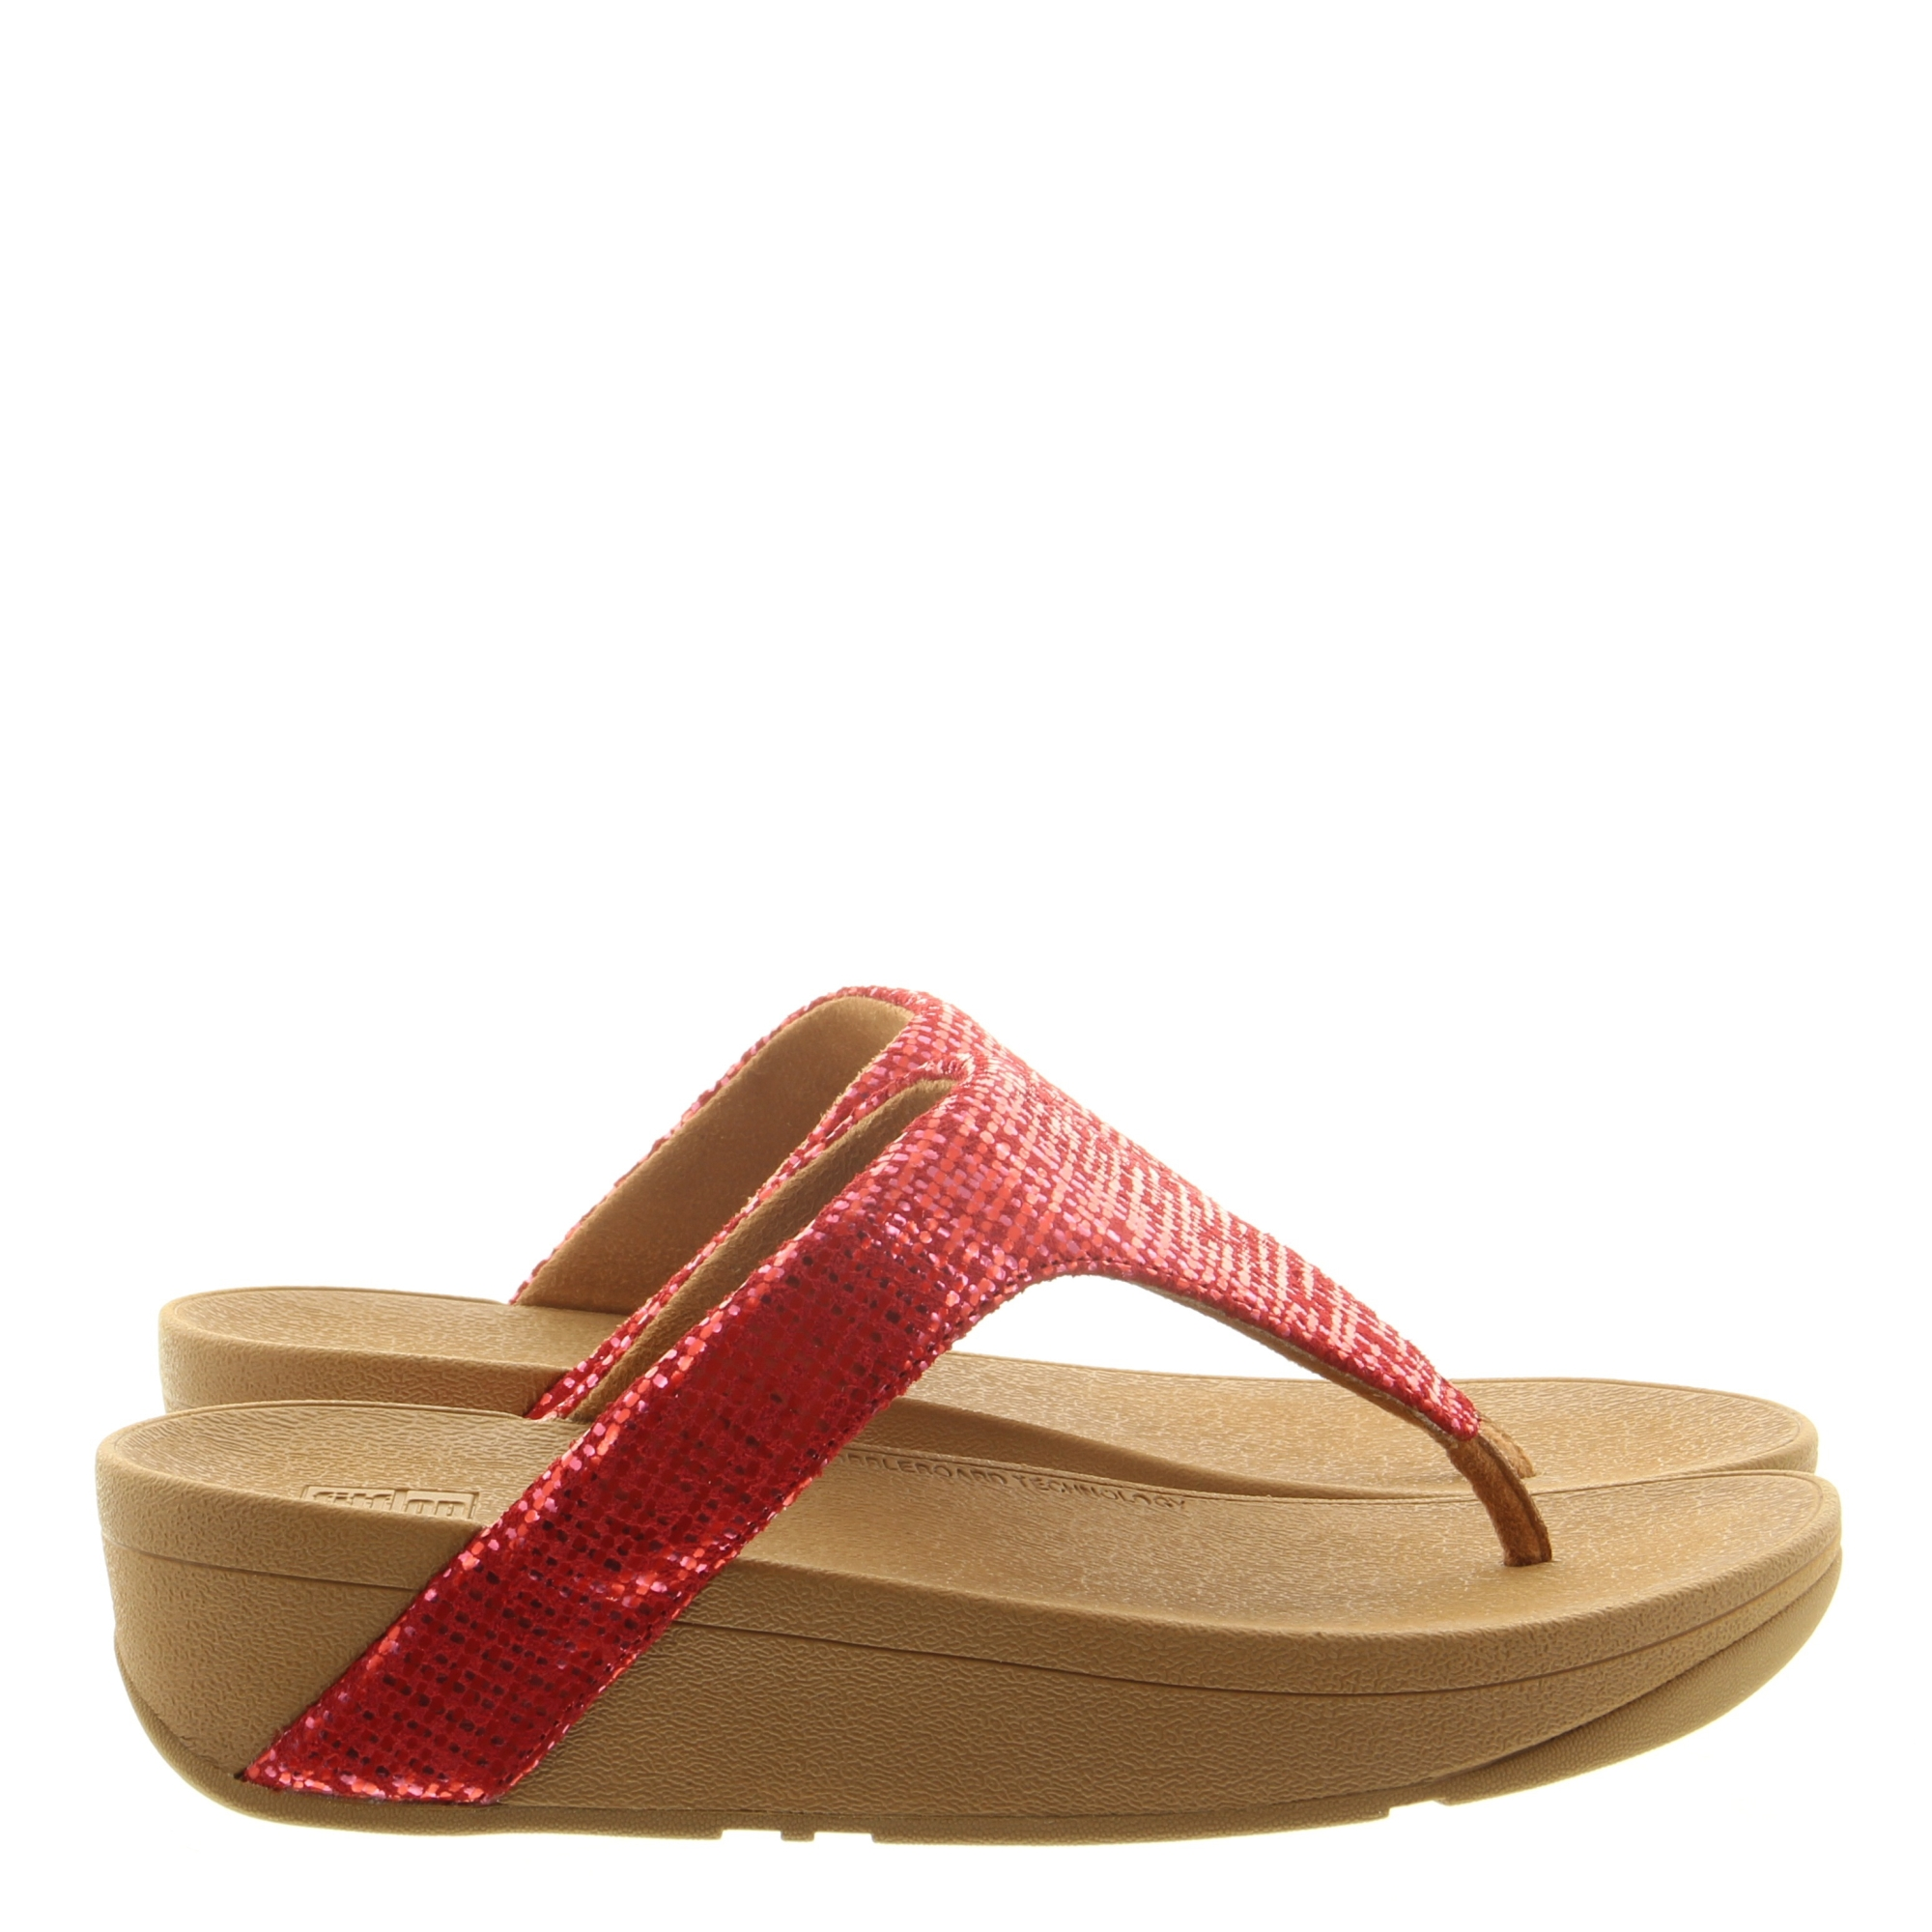 Fitflop Lottie Chain Print Toe Post red